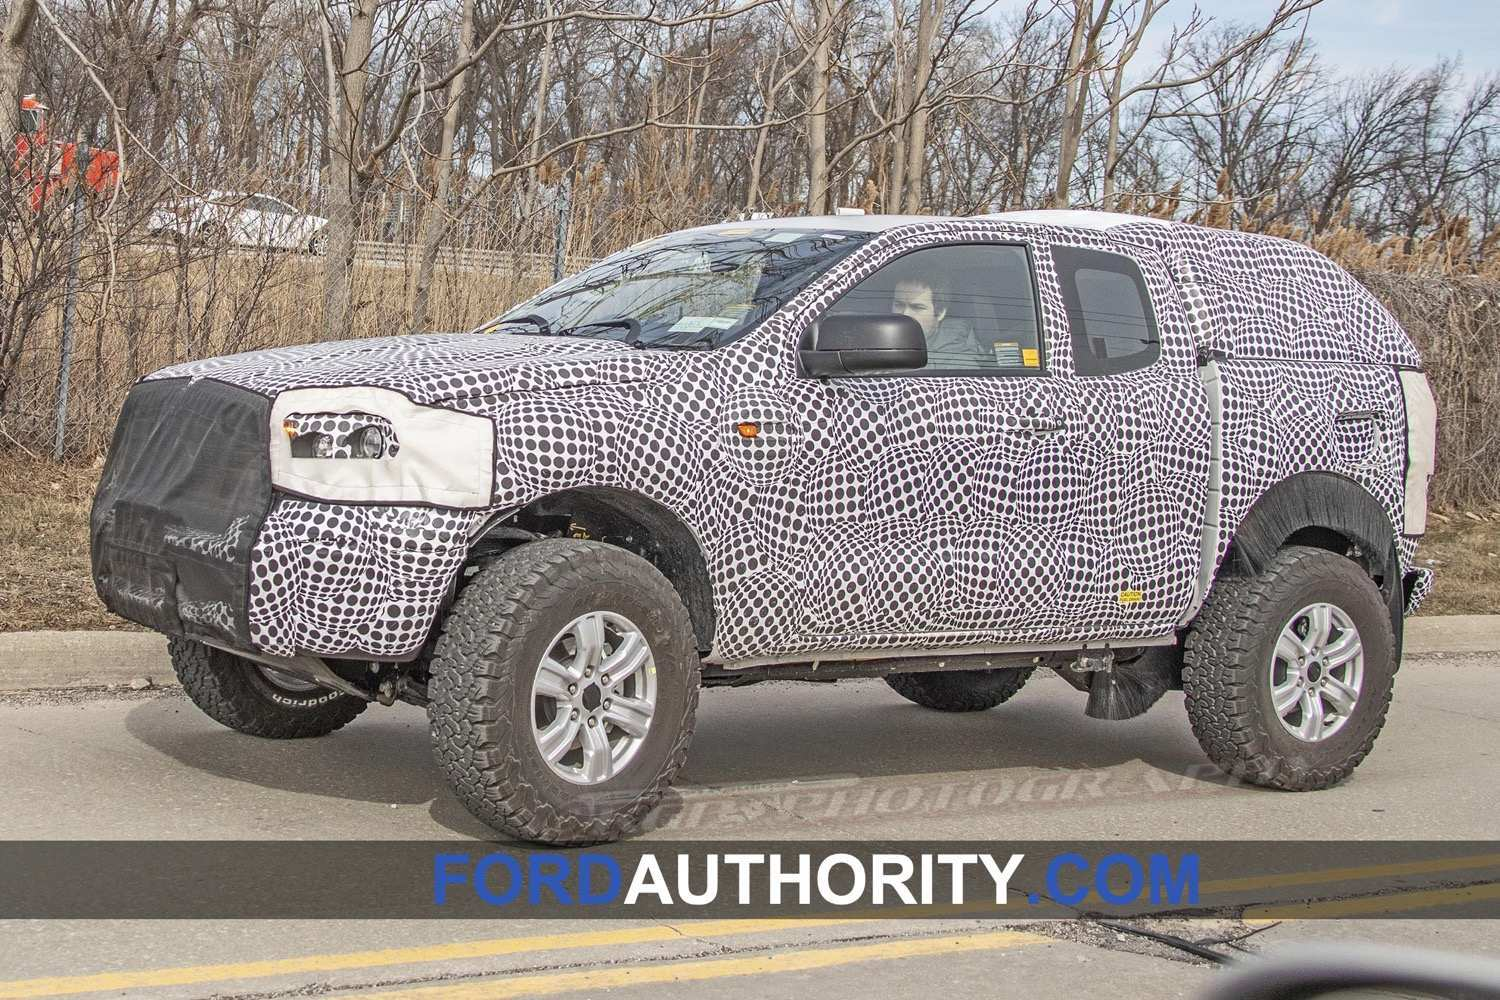 21 All New Ford Bronco 2020 Images Pictures for Ford Bronco 2020 Images